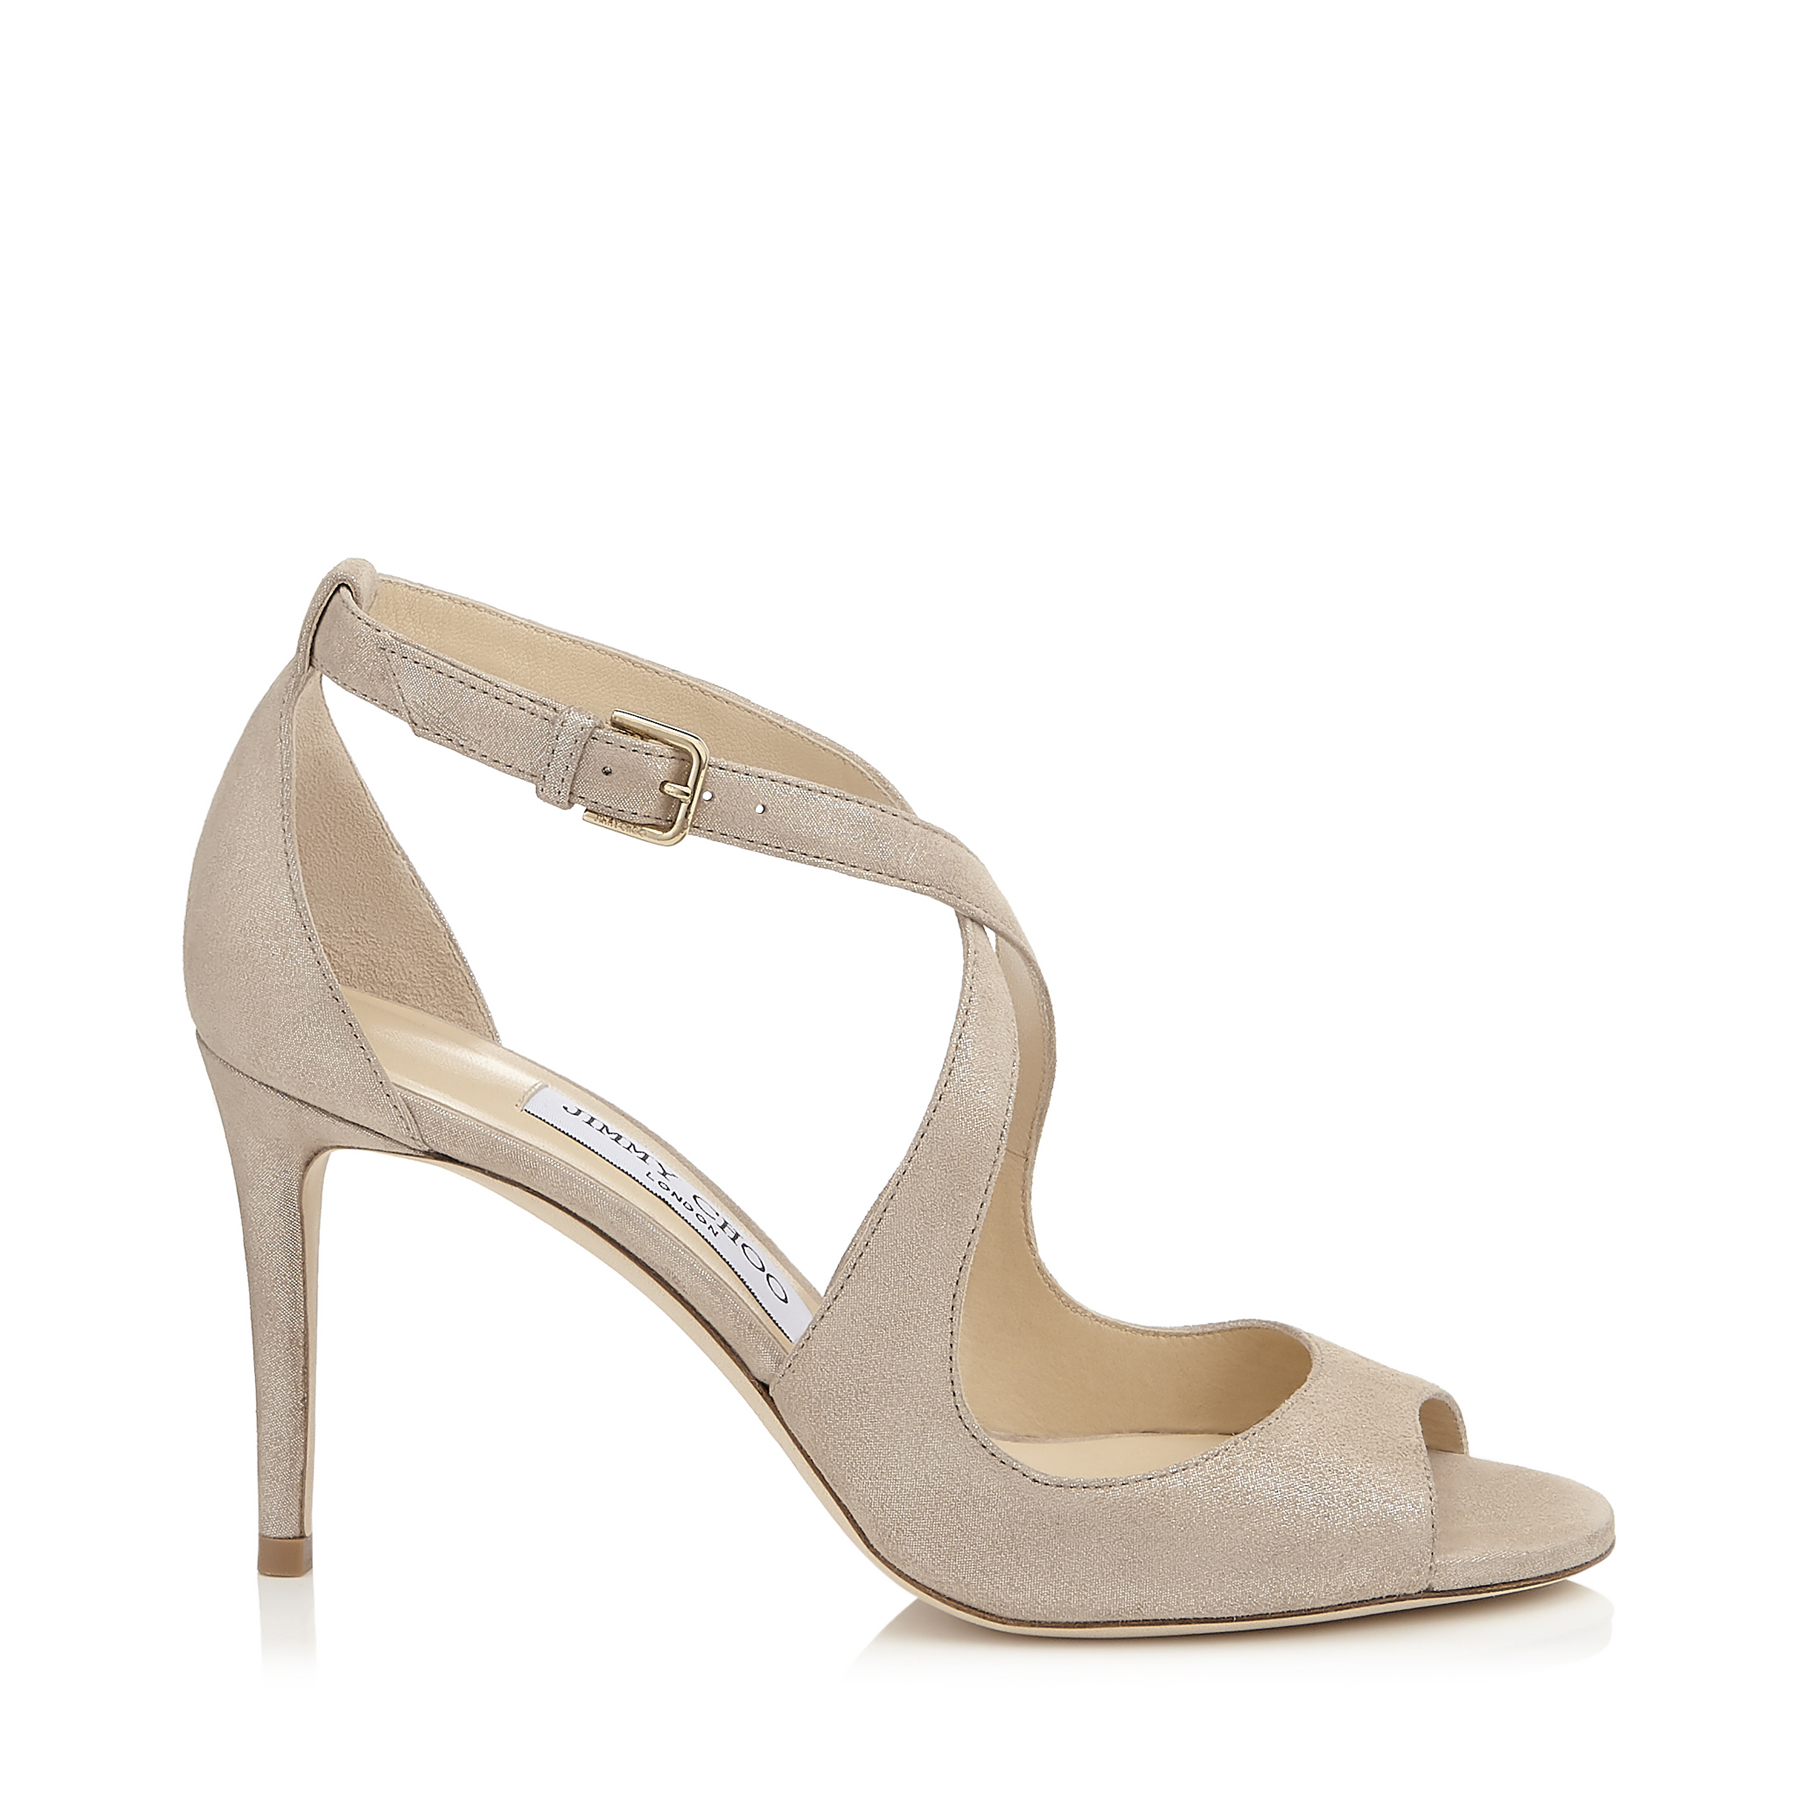 EMILY 85 Sand Shimmer Suede Sandals by Jimmy Choo